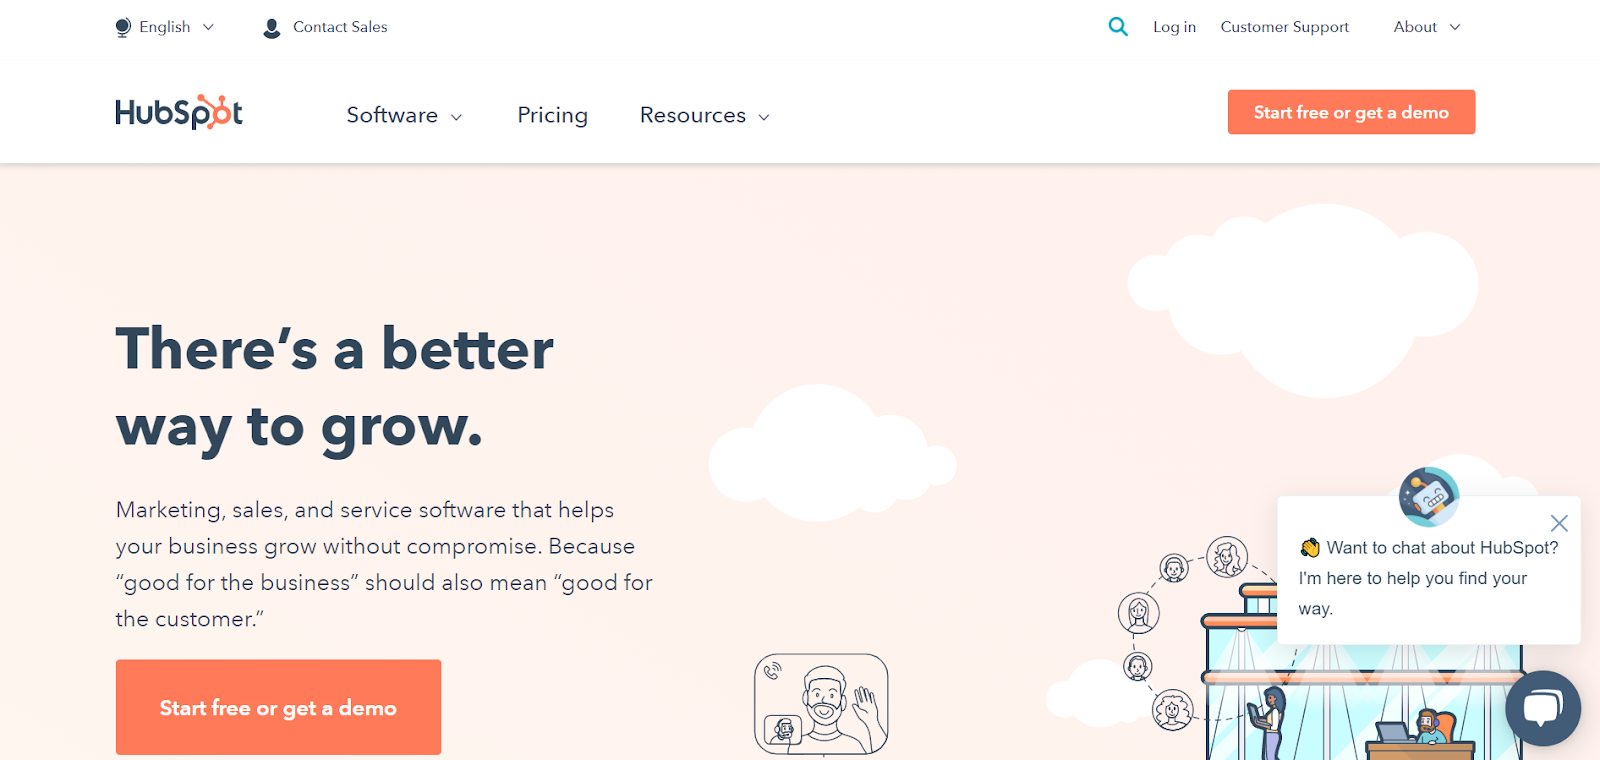 """HubSpot homepage: There's a better way to grow. Marketing, sales, and service software that helps your business grow without compromise. Because """"good for the business"""" should also mean """"good for the customer."""""""